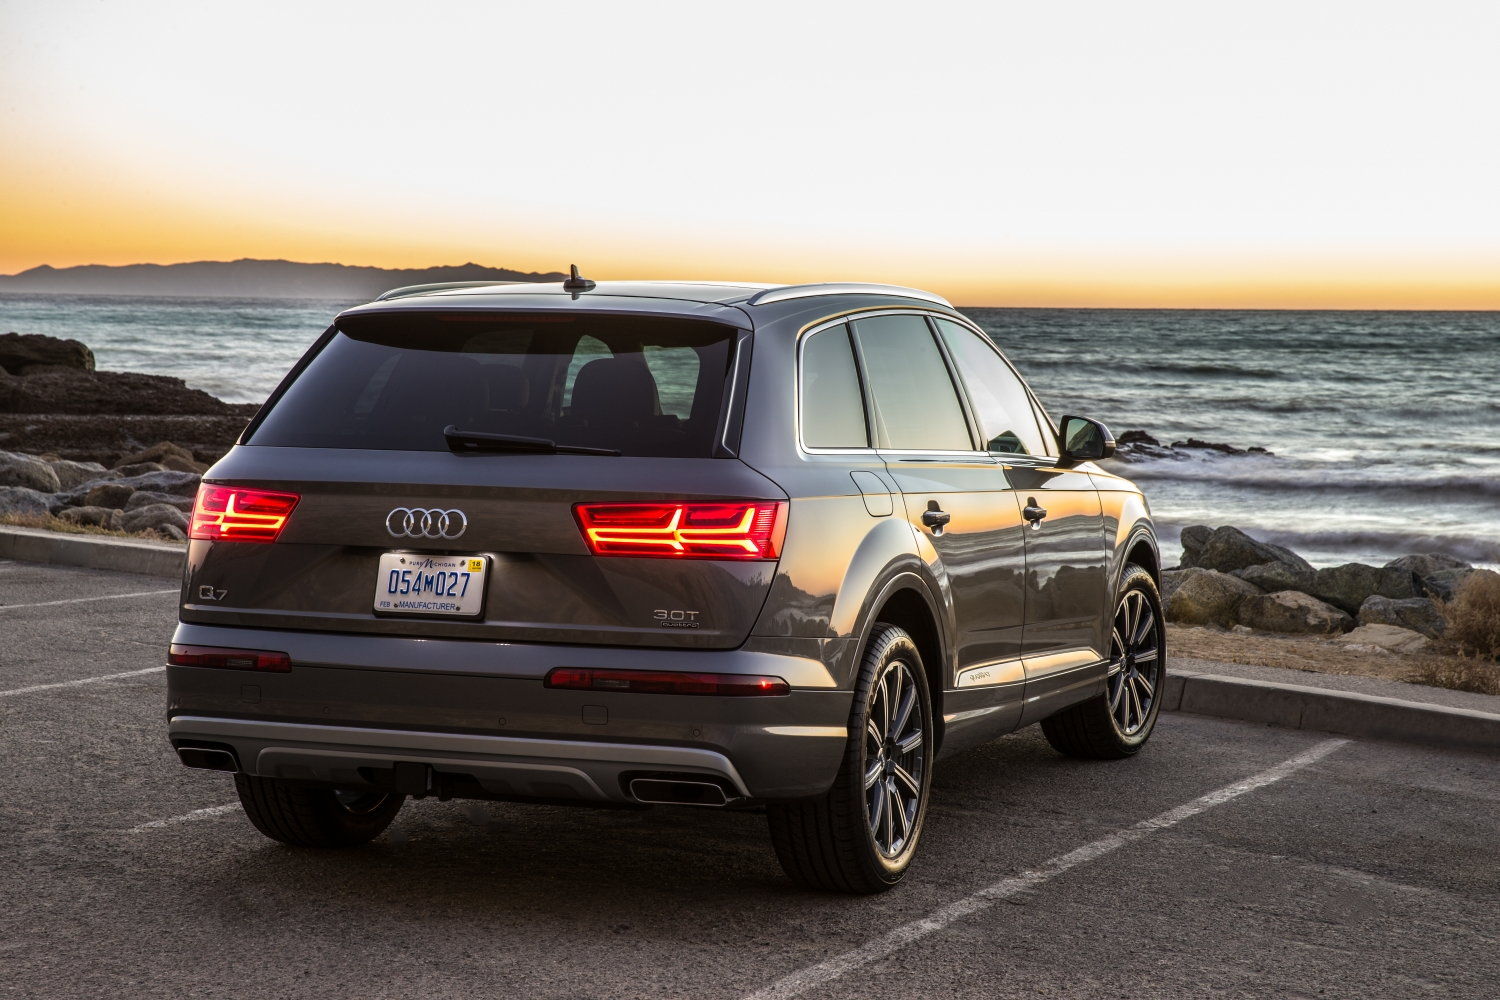 2018 audi q7 deals prices incentives leases overview carsdirect. Black Bedroom Furniture Sets. Home Design Ideas